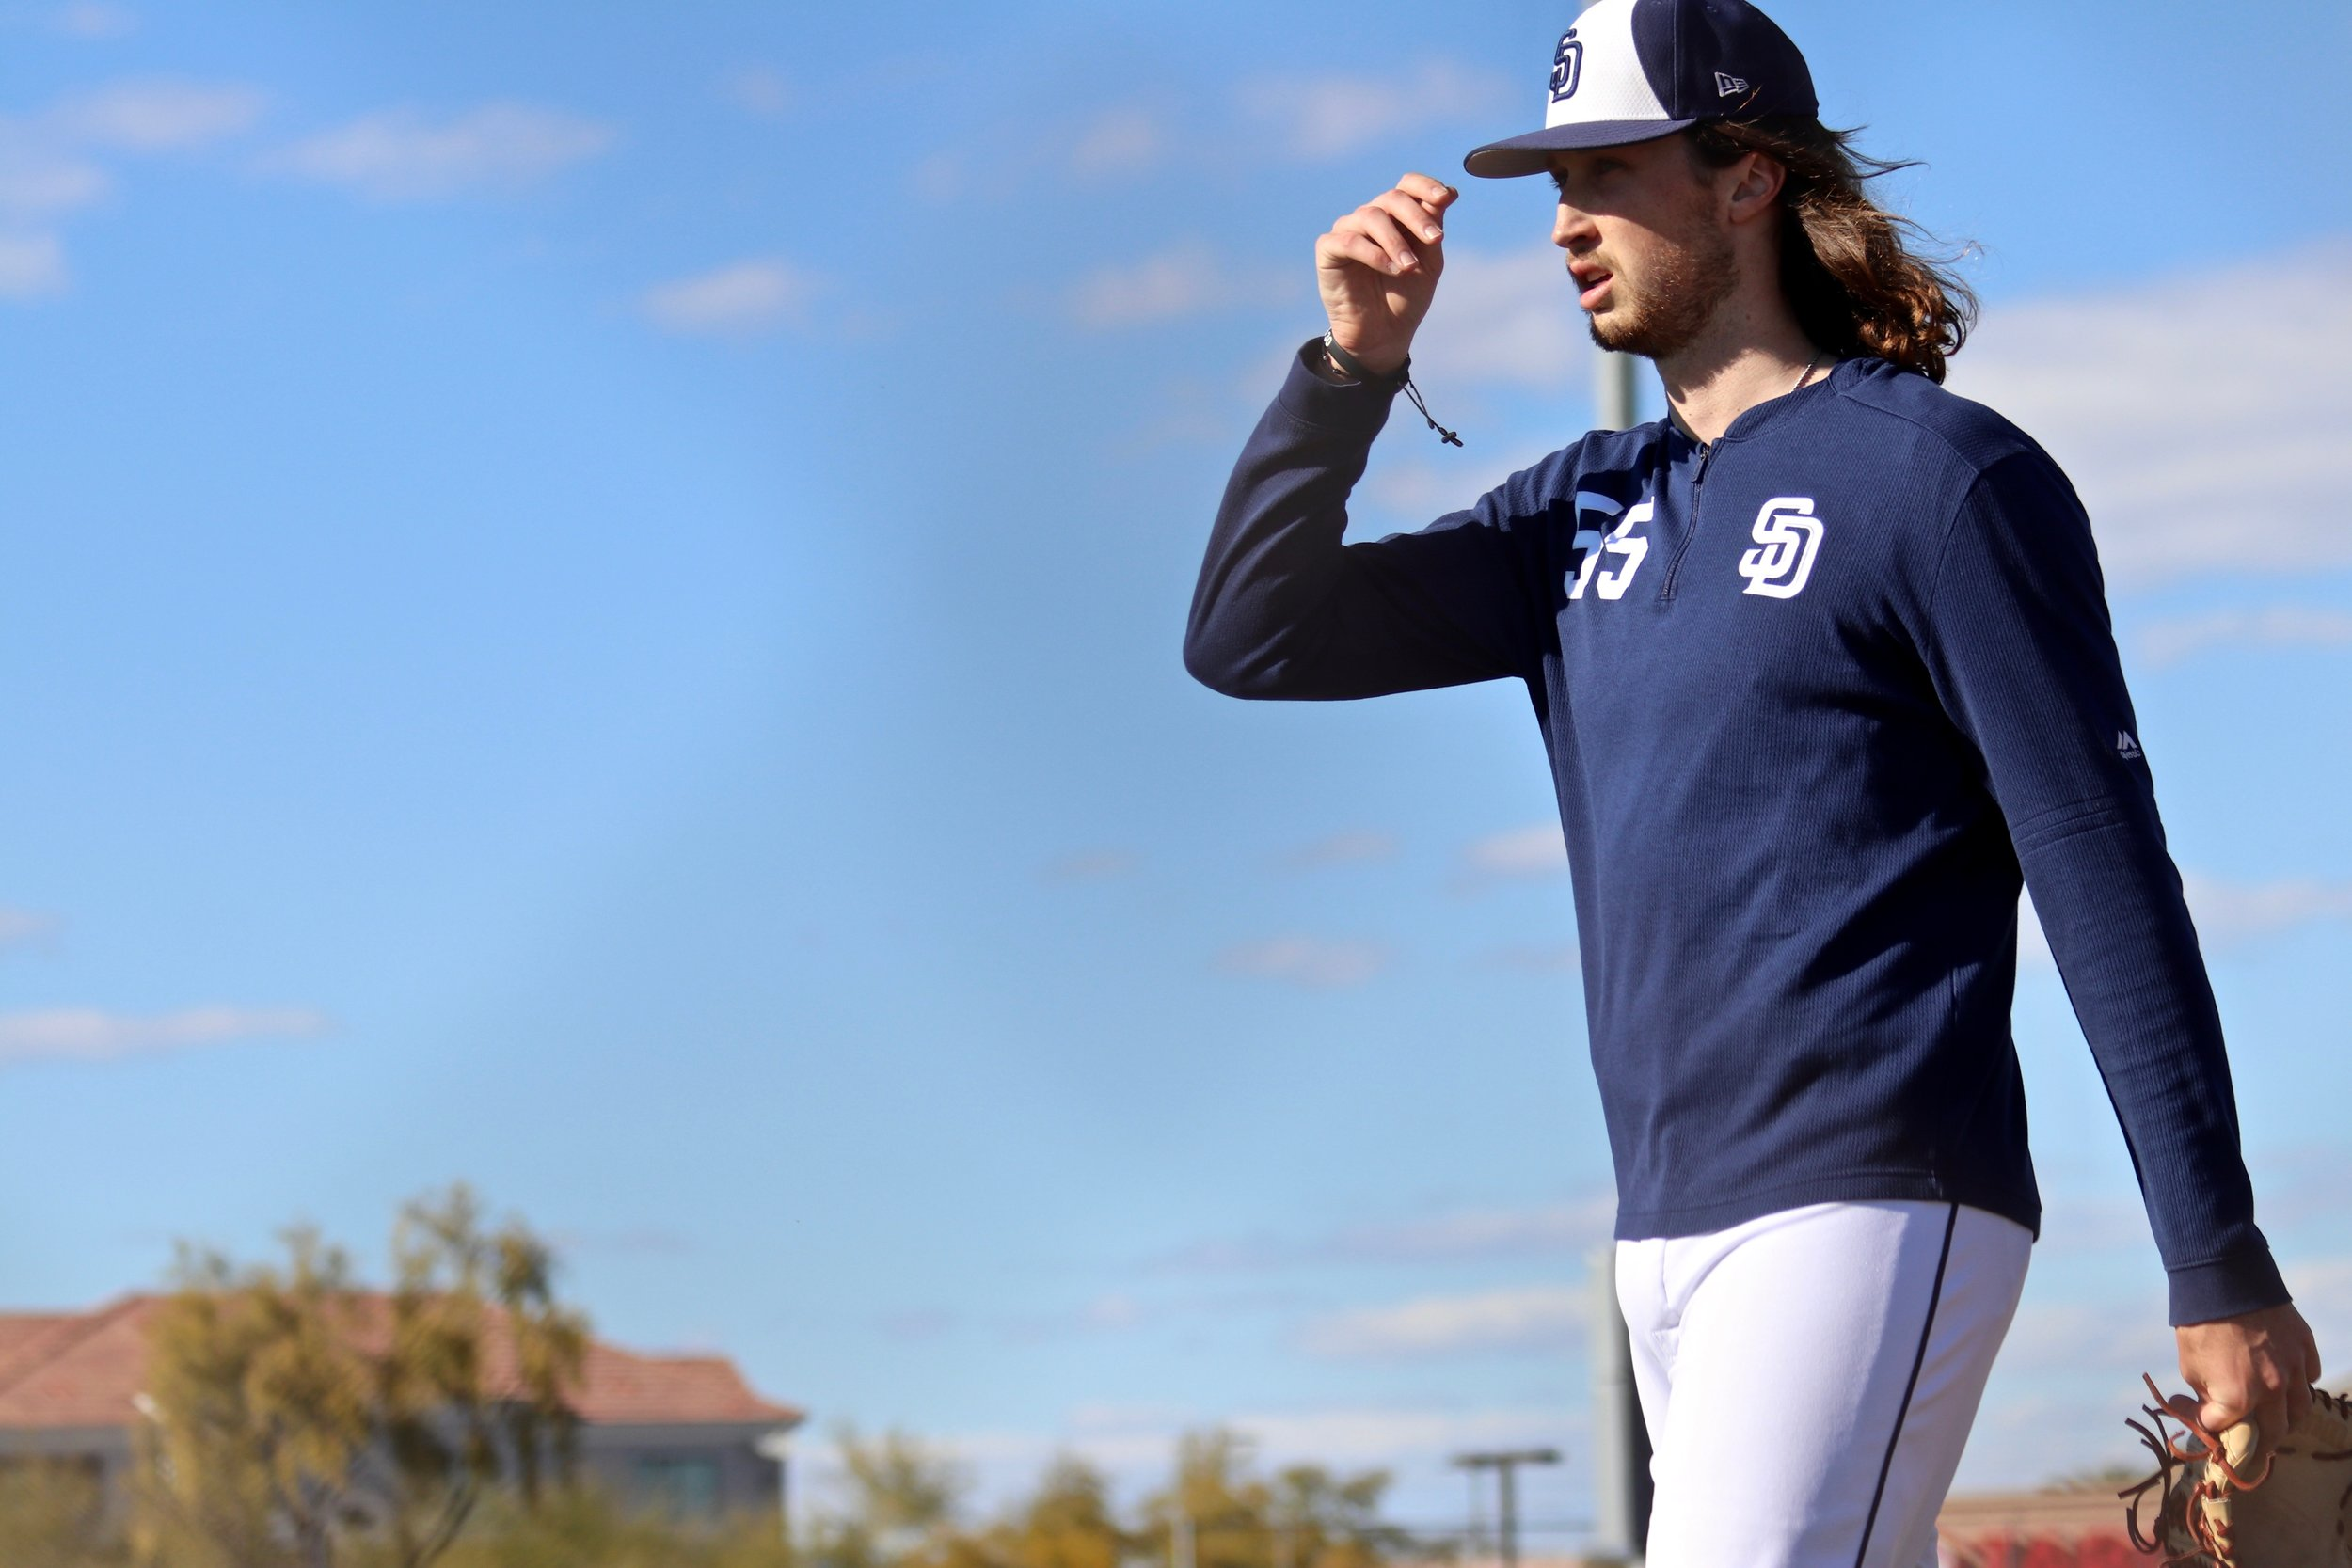 Matt Strahm's offseason transition to starting pitcher - 18 raw eggs and one pound of red meat per day. His college coach, Steve Murray, knew Strahm could do it.